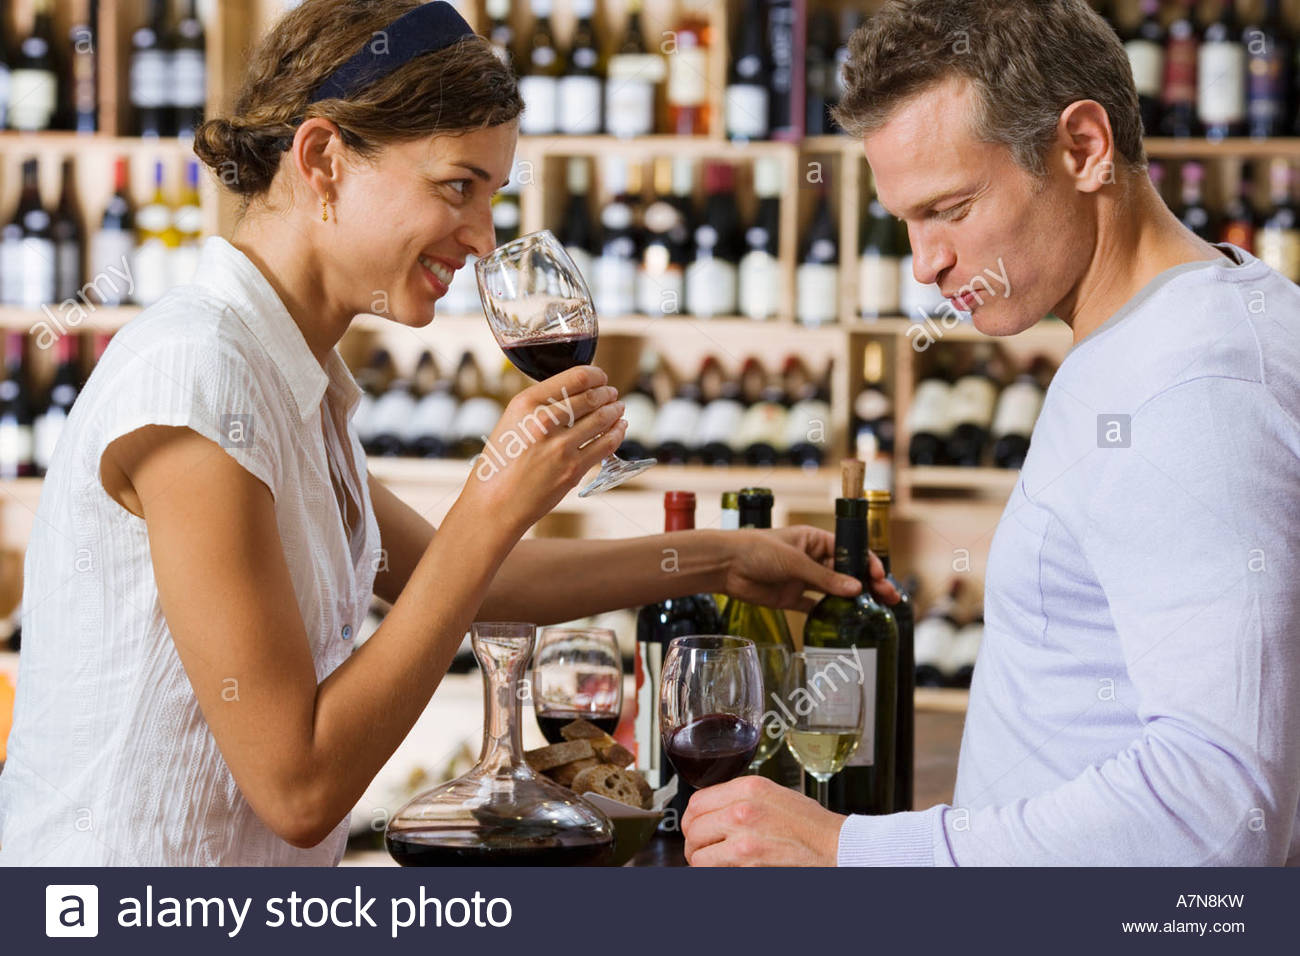 Couple wine tasting in off licence woman smelling glass of red wine man drinking profile smiling - Stock Image